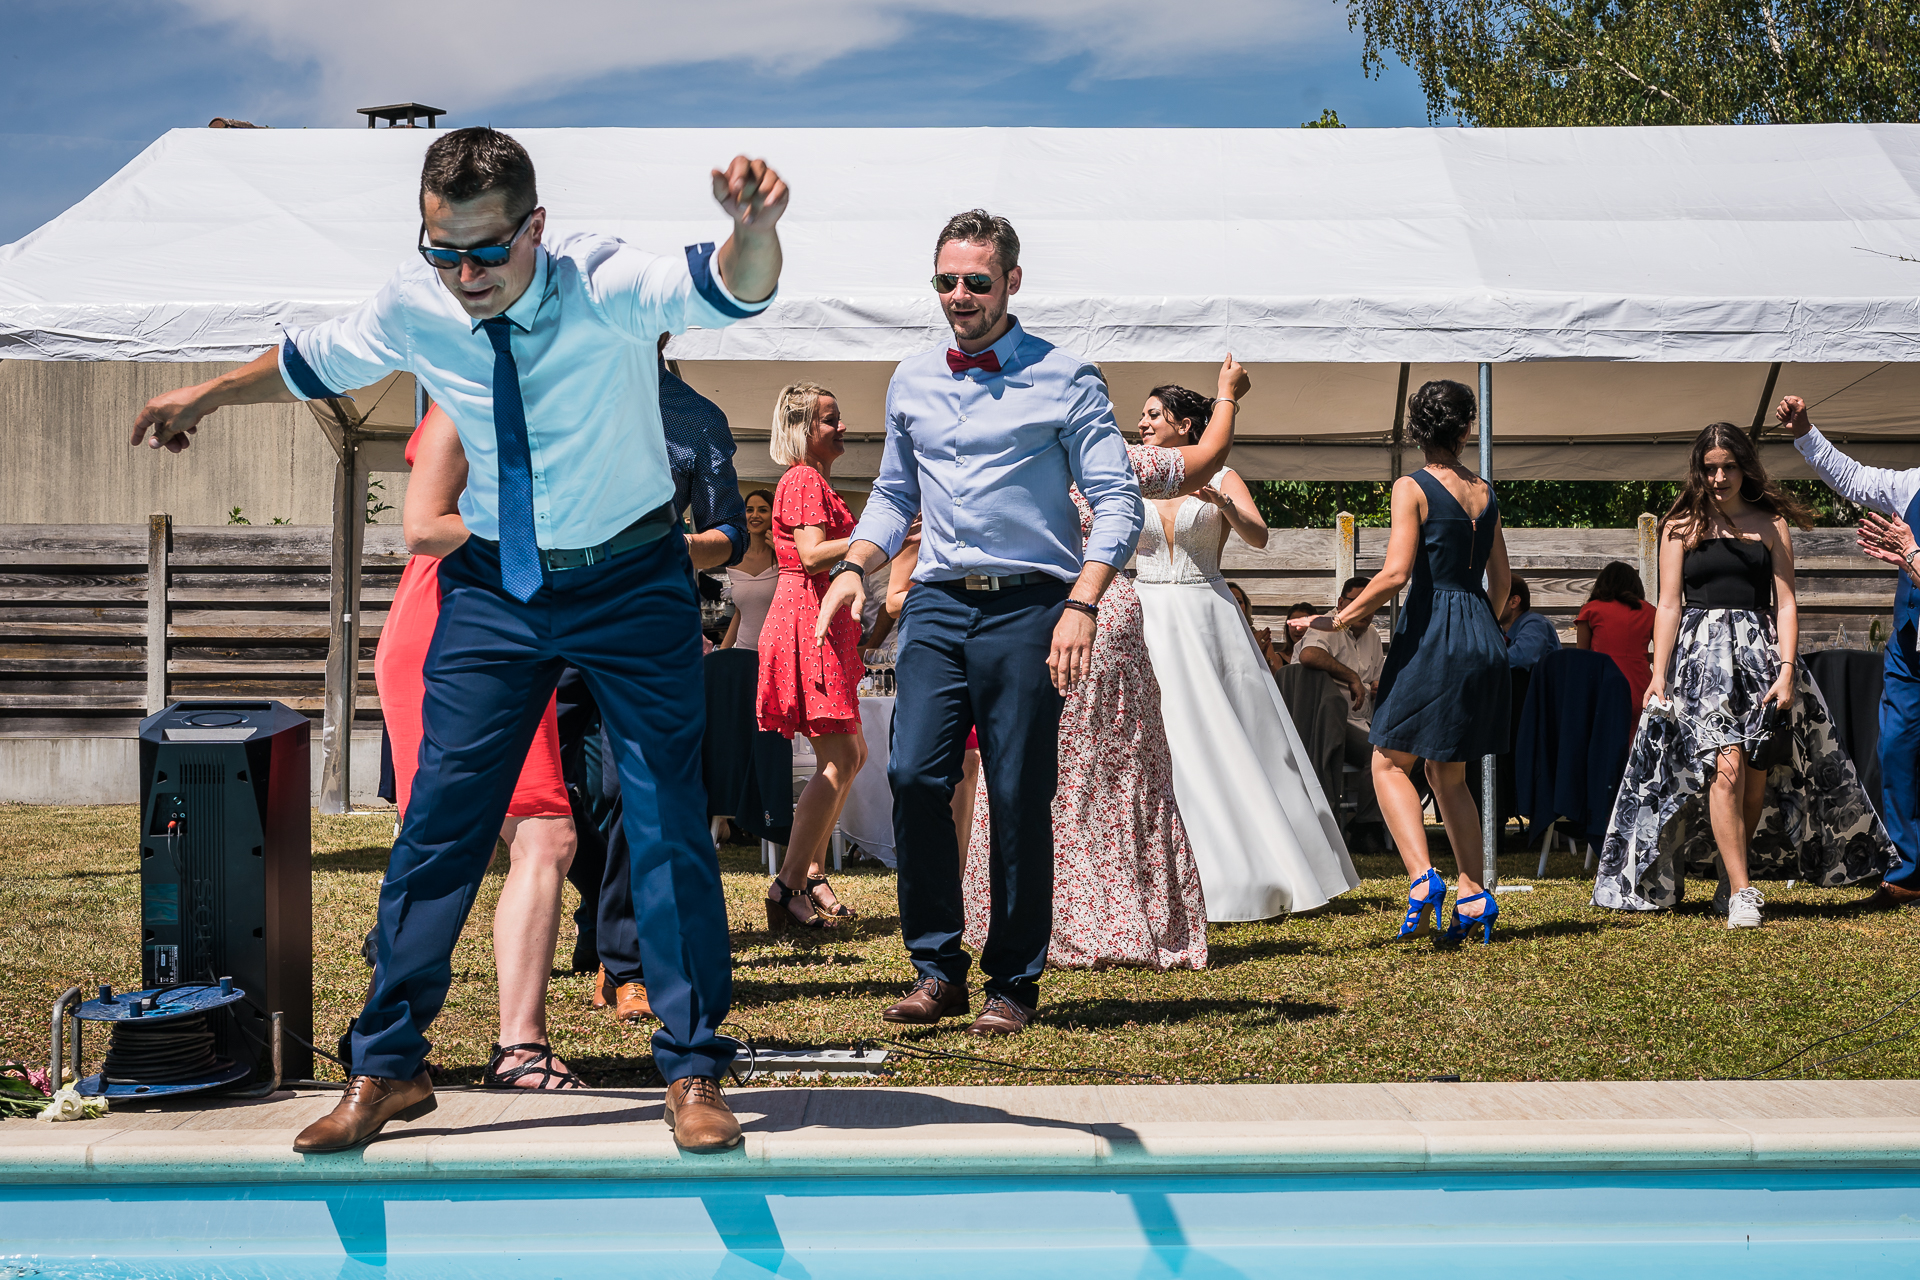 France Photography from a Backyard Elopement by the Pool | A pool incident happened